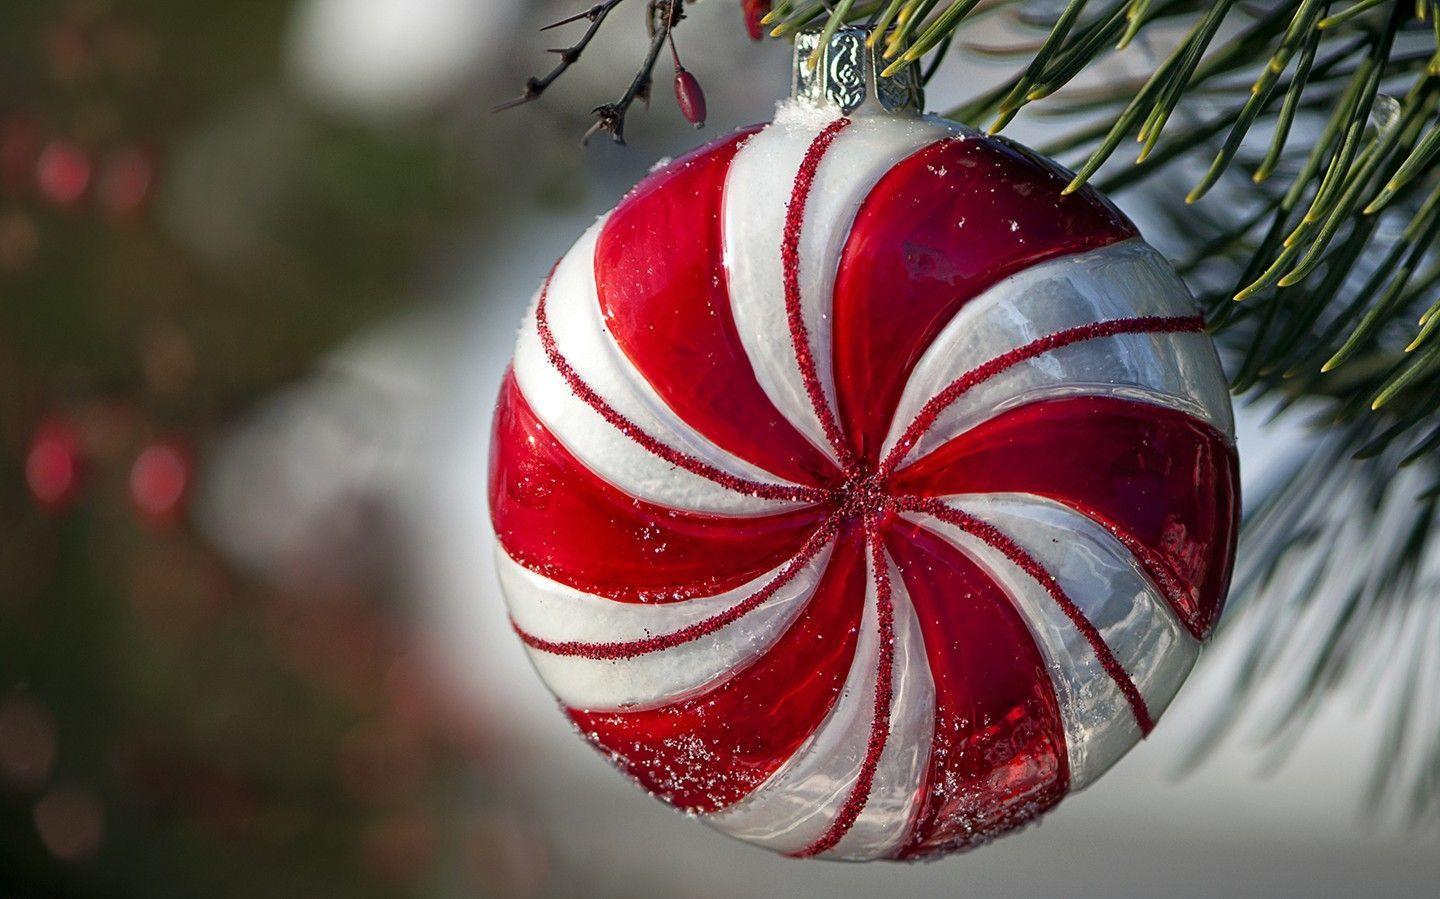 Colorful Christmas ornaments wallpaper 31115 - Christmas - Festival